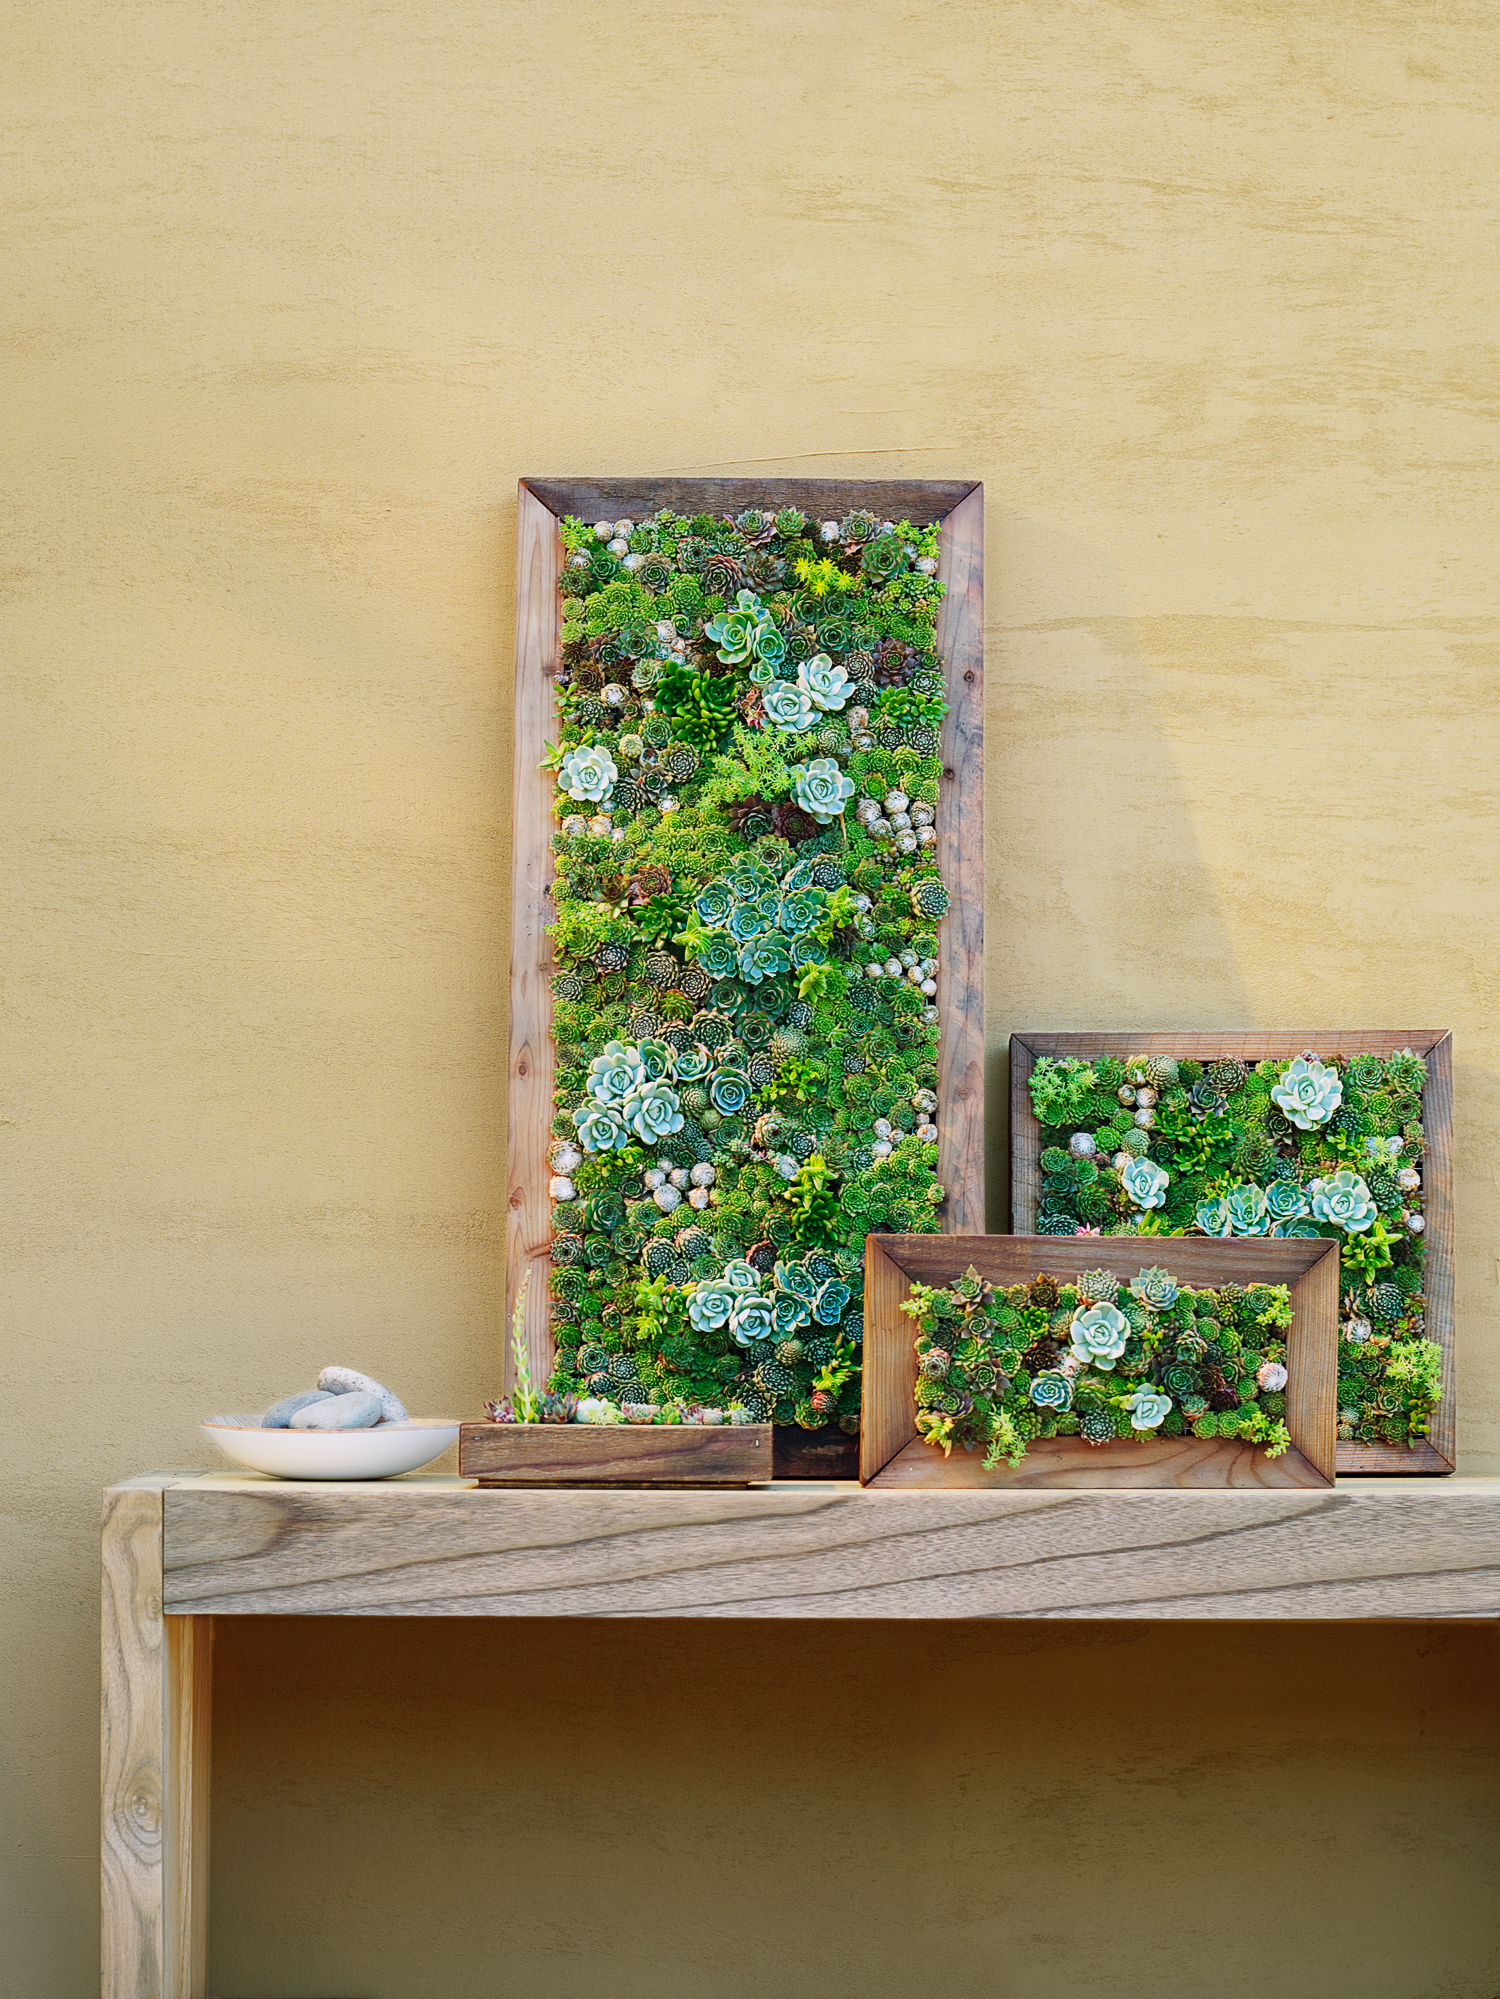 How to Make Vertical Succulent Gardens - Sunset Magazine